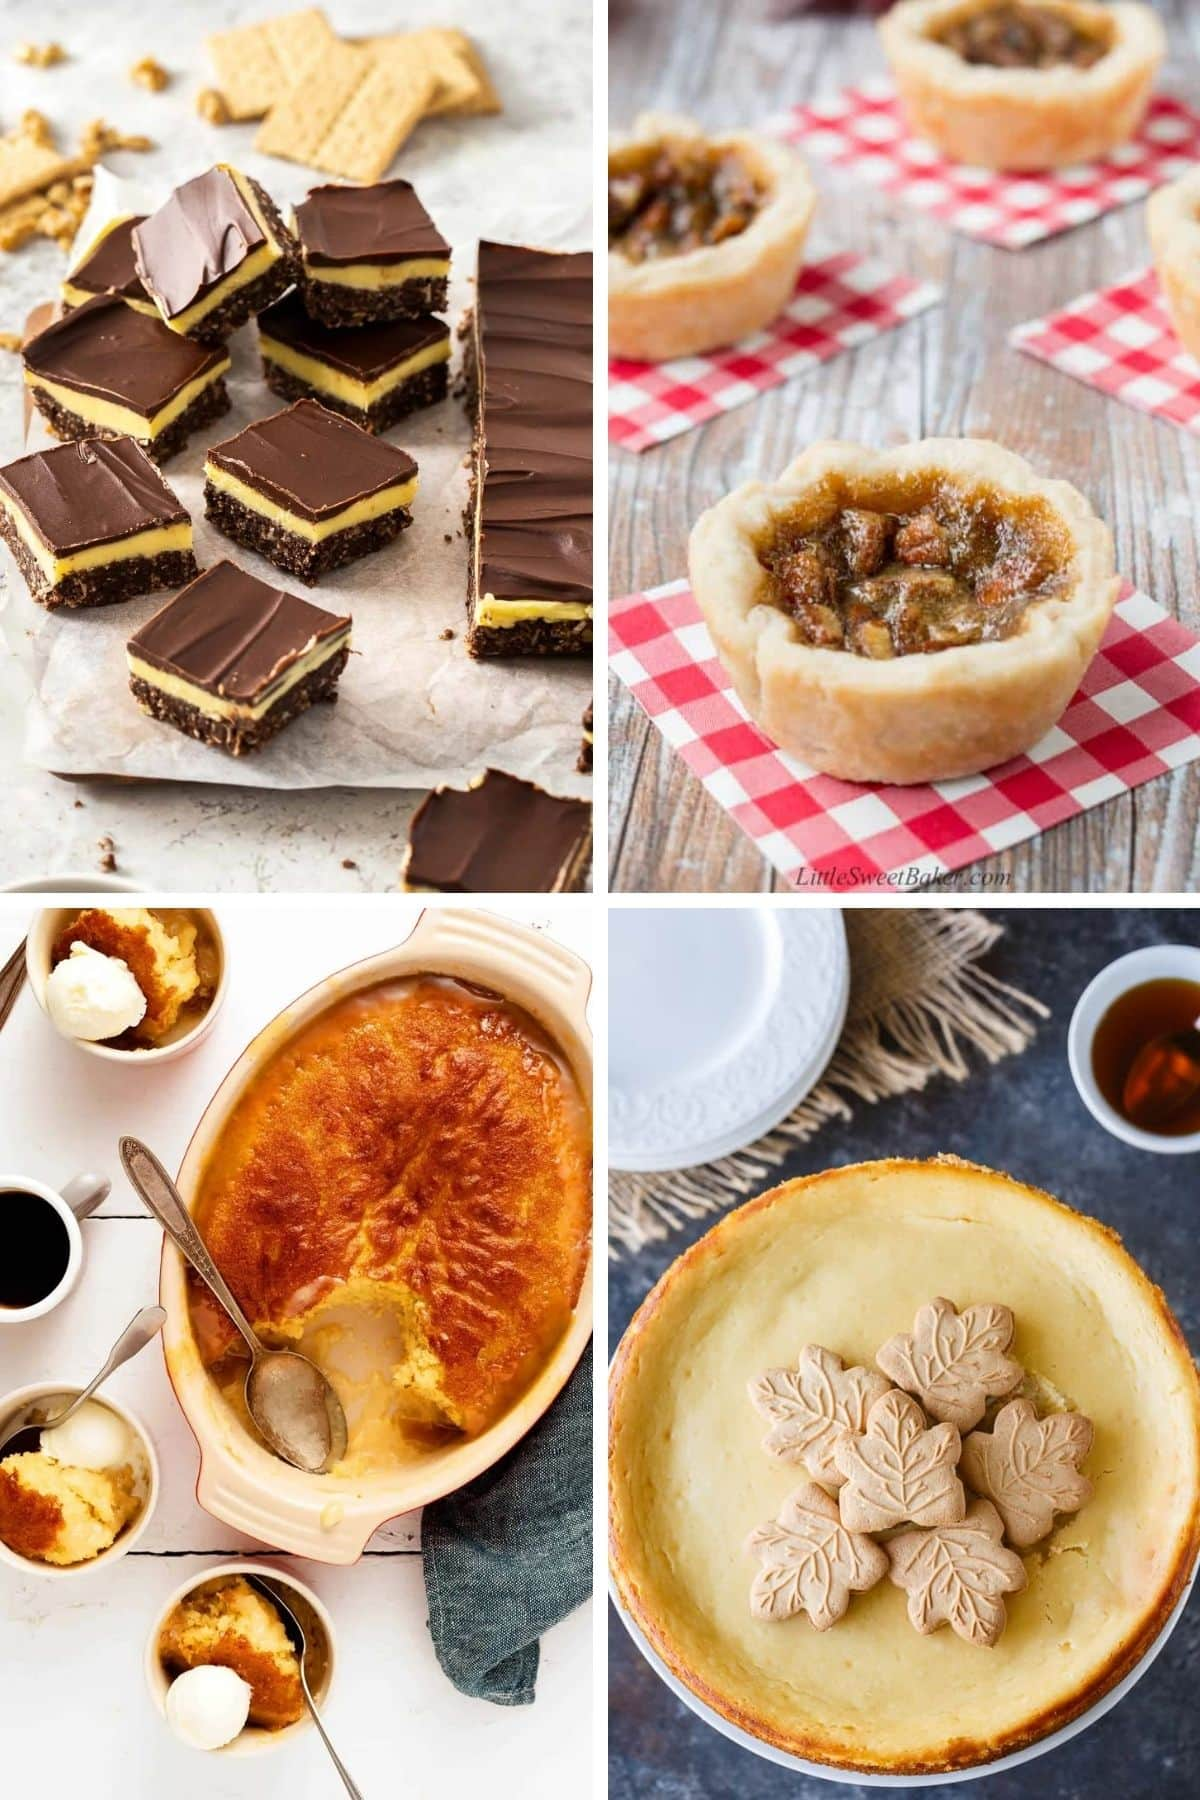 Collage of classic Canadian desserts.